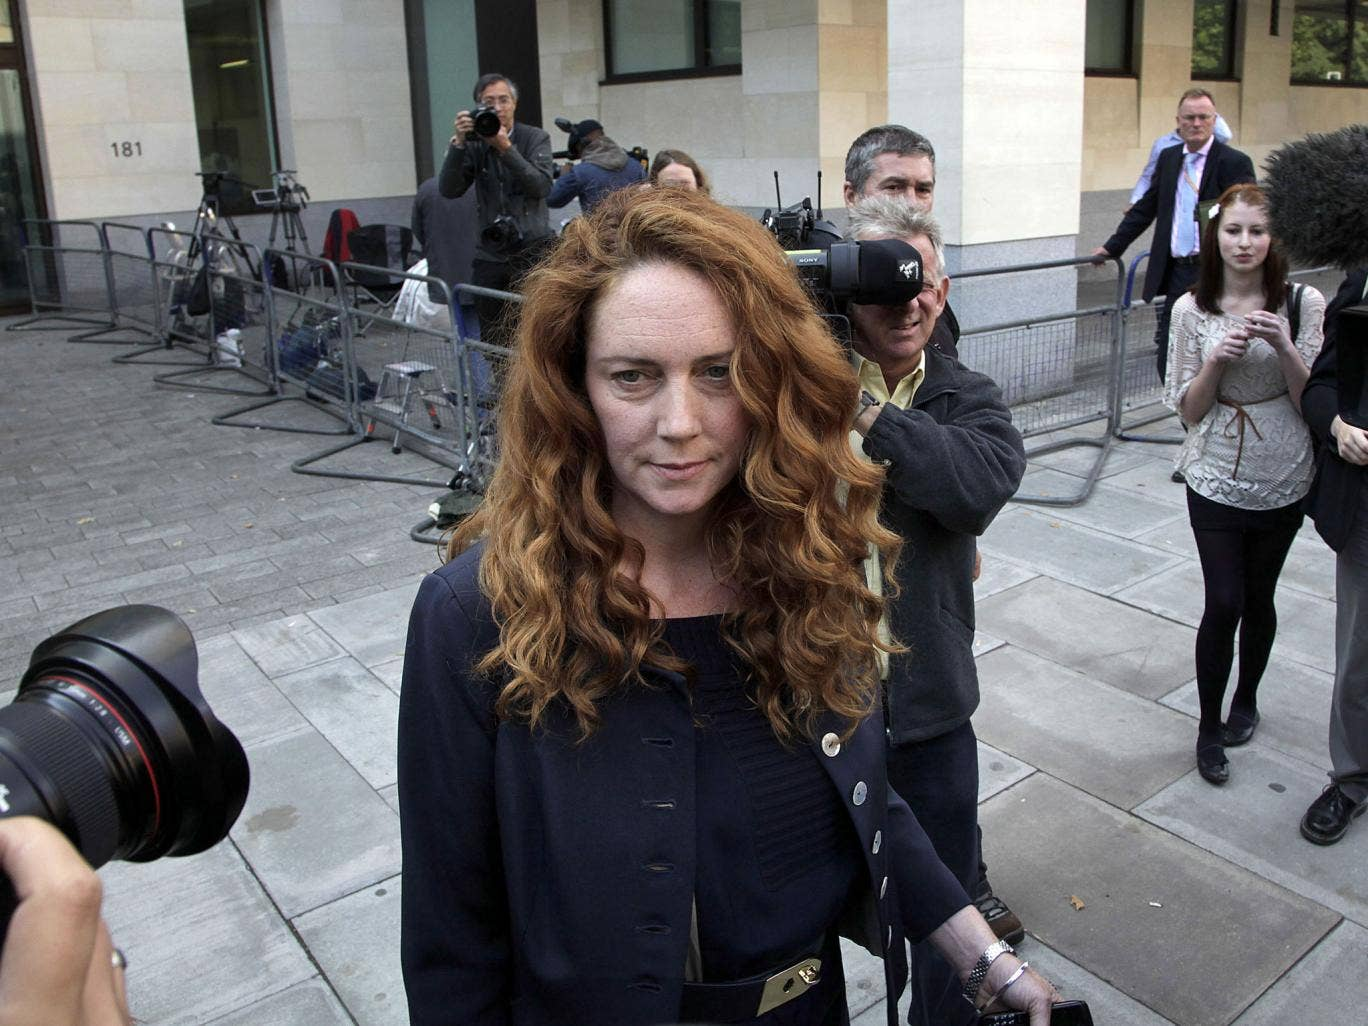 The former 'News of the World' editor Rebekah Brooks